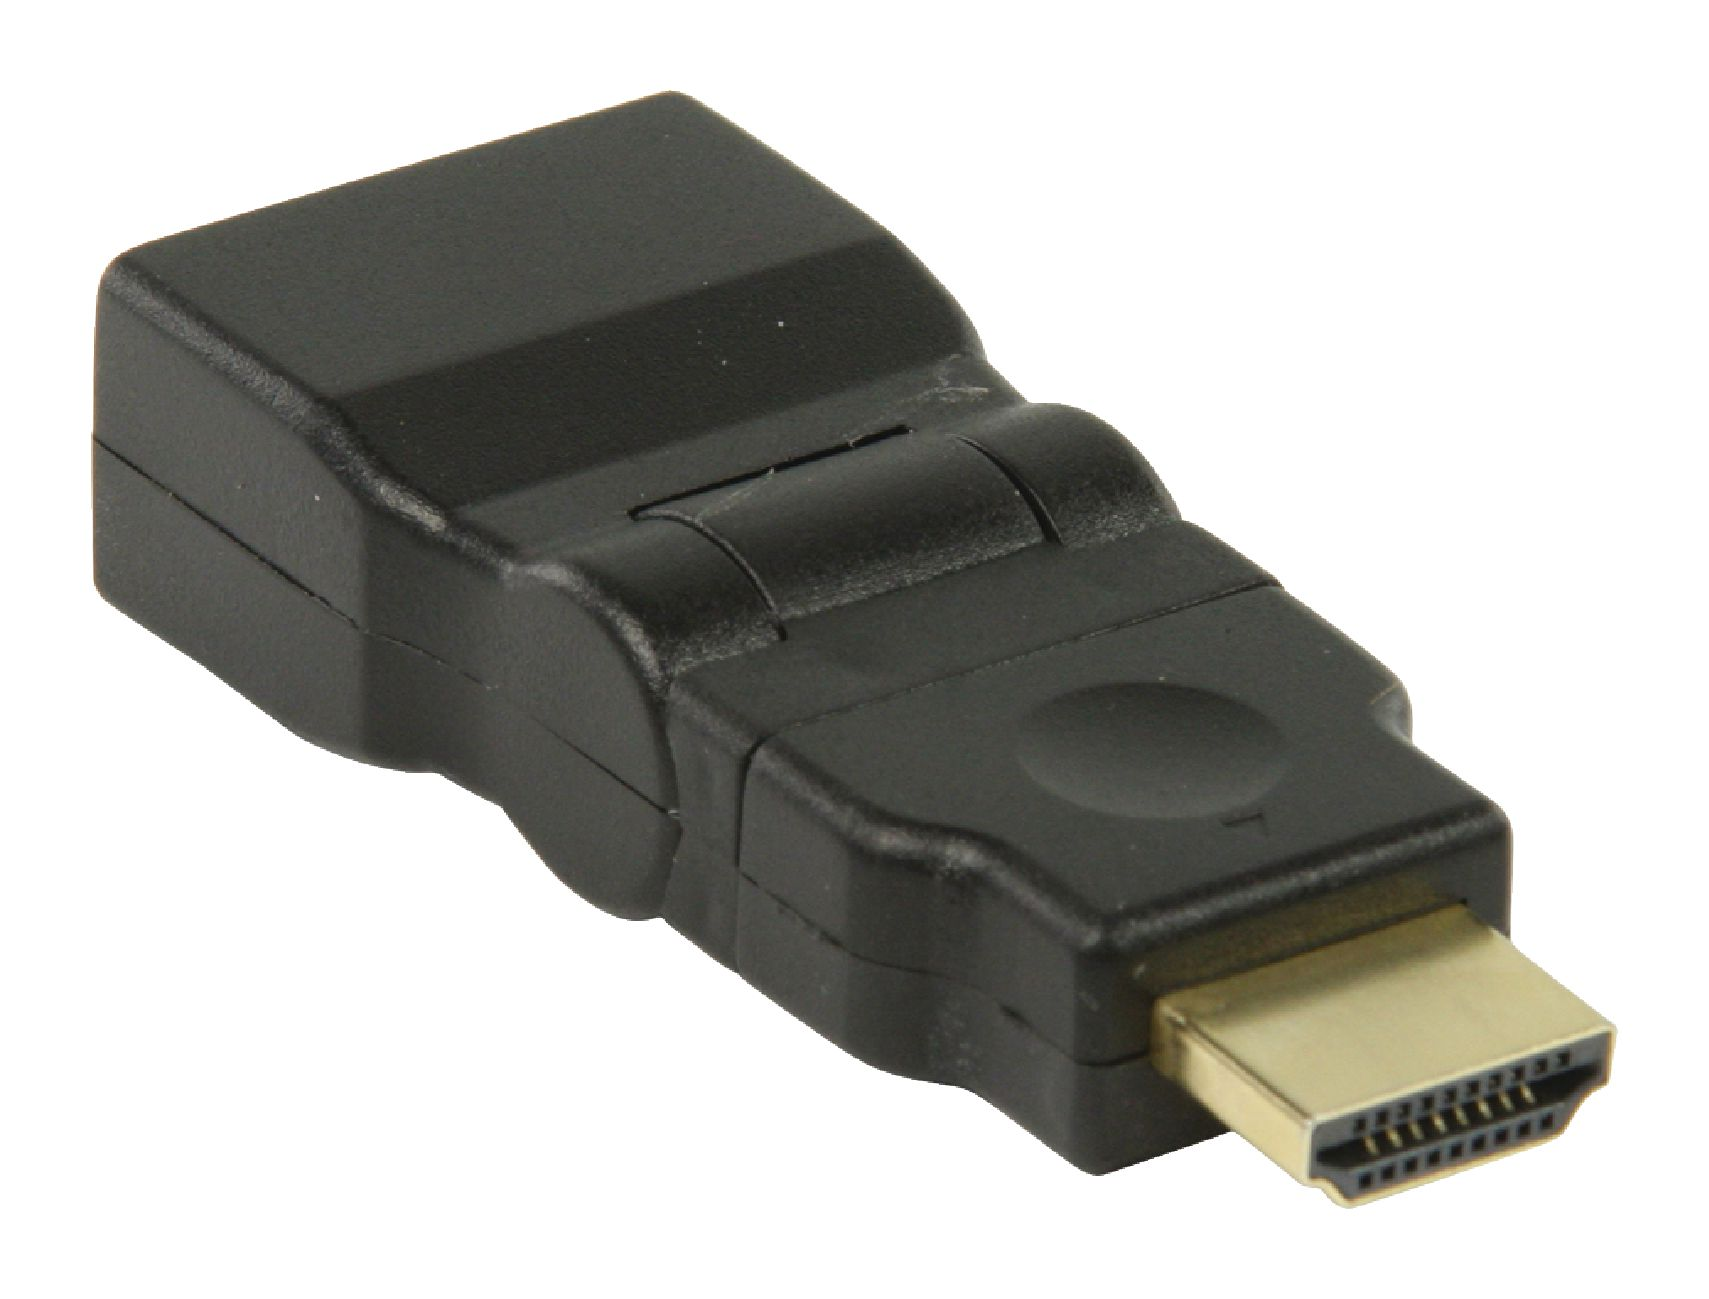 VGVP34905B High Speed HDMI met Ethernet Adapter Zwenkbaar HDMI-Connector - HDMI Female Zwart